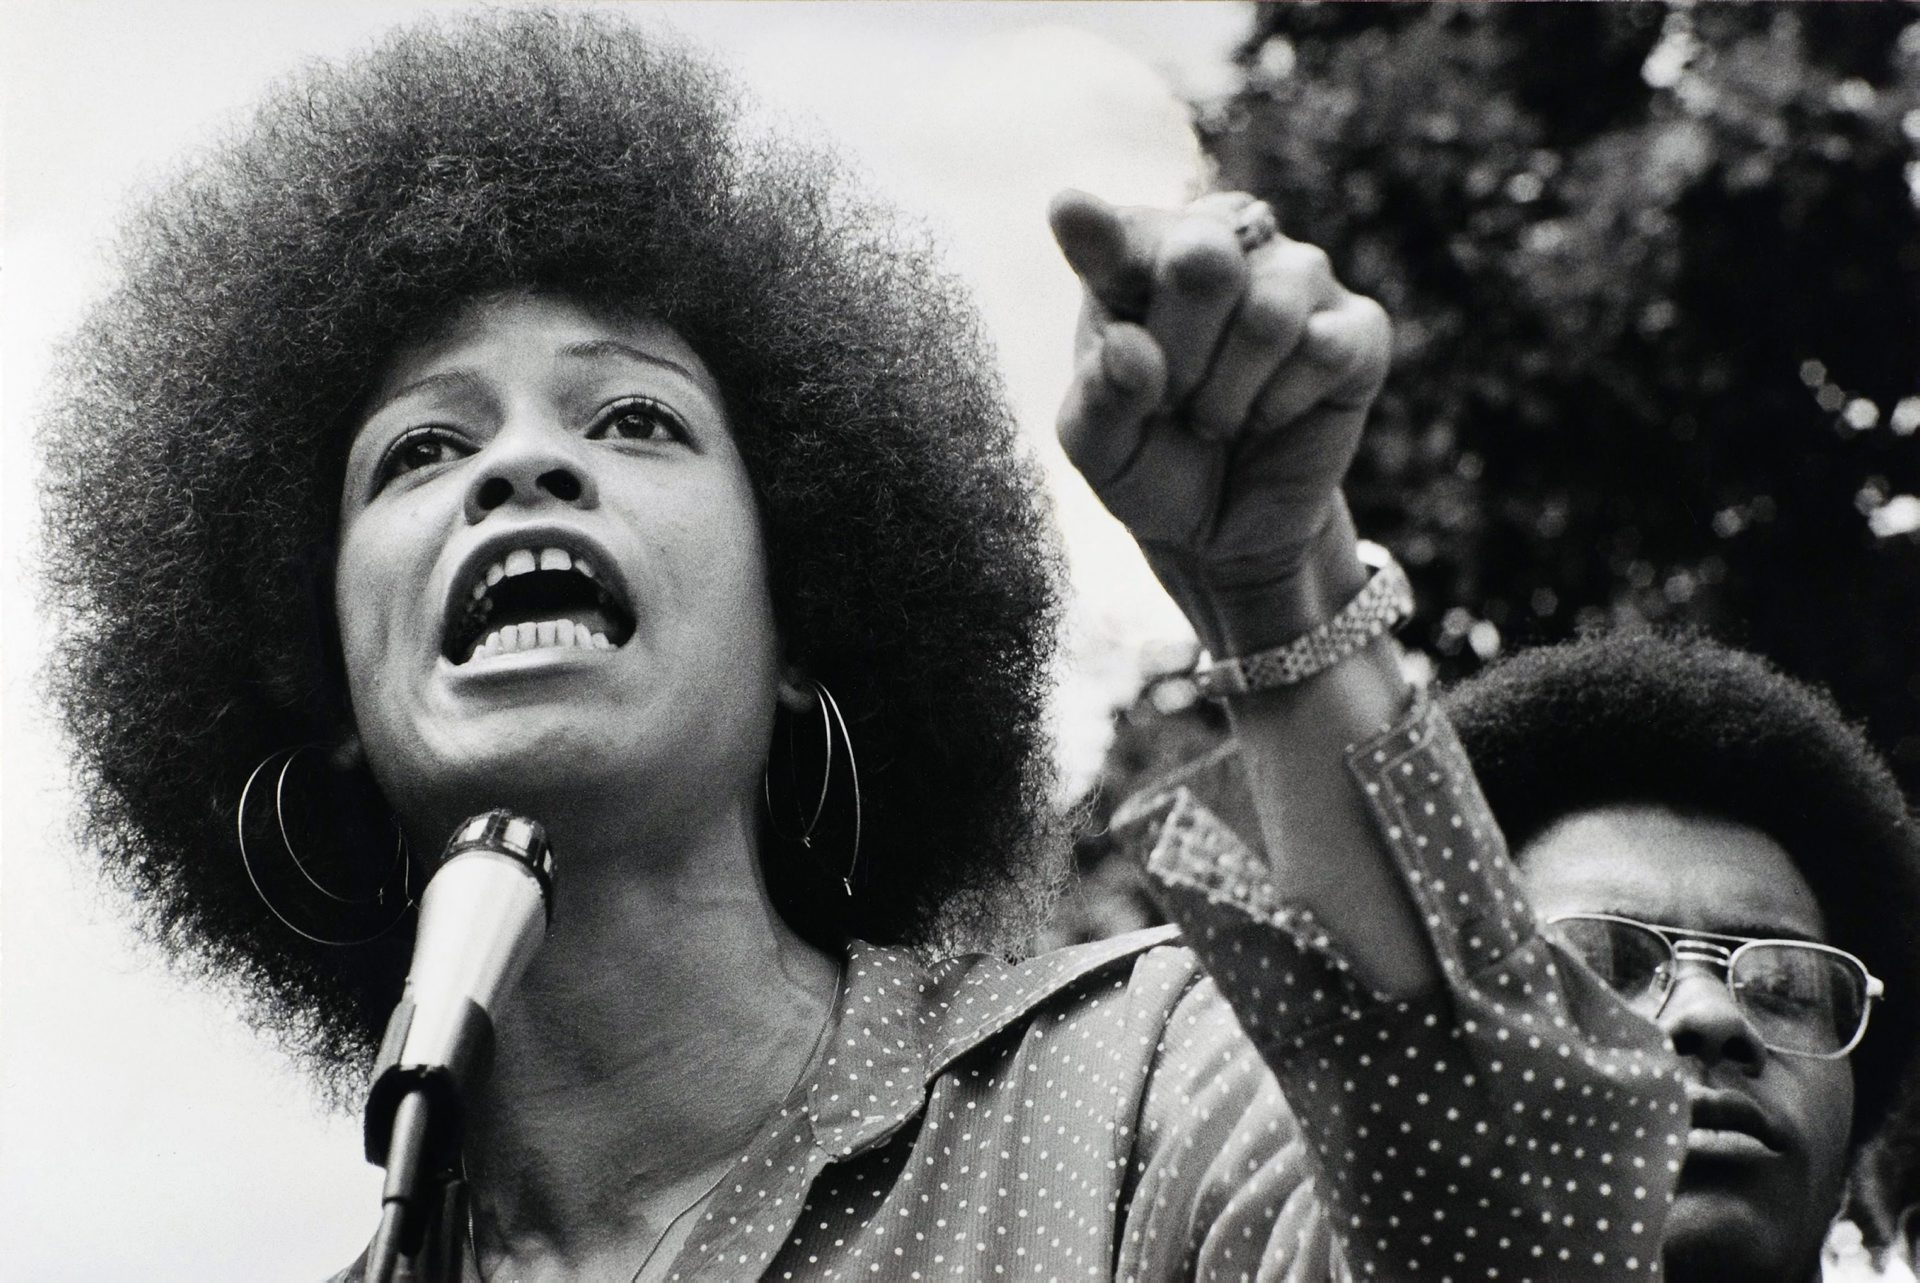 Raleigh, North Carolina, July 4, 1974: Angela Davis speaking in Raleigh. They were protesting the death penalty with the National Alliance against Racism and Repression.